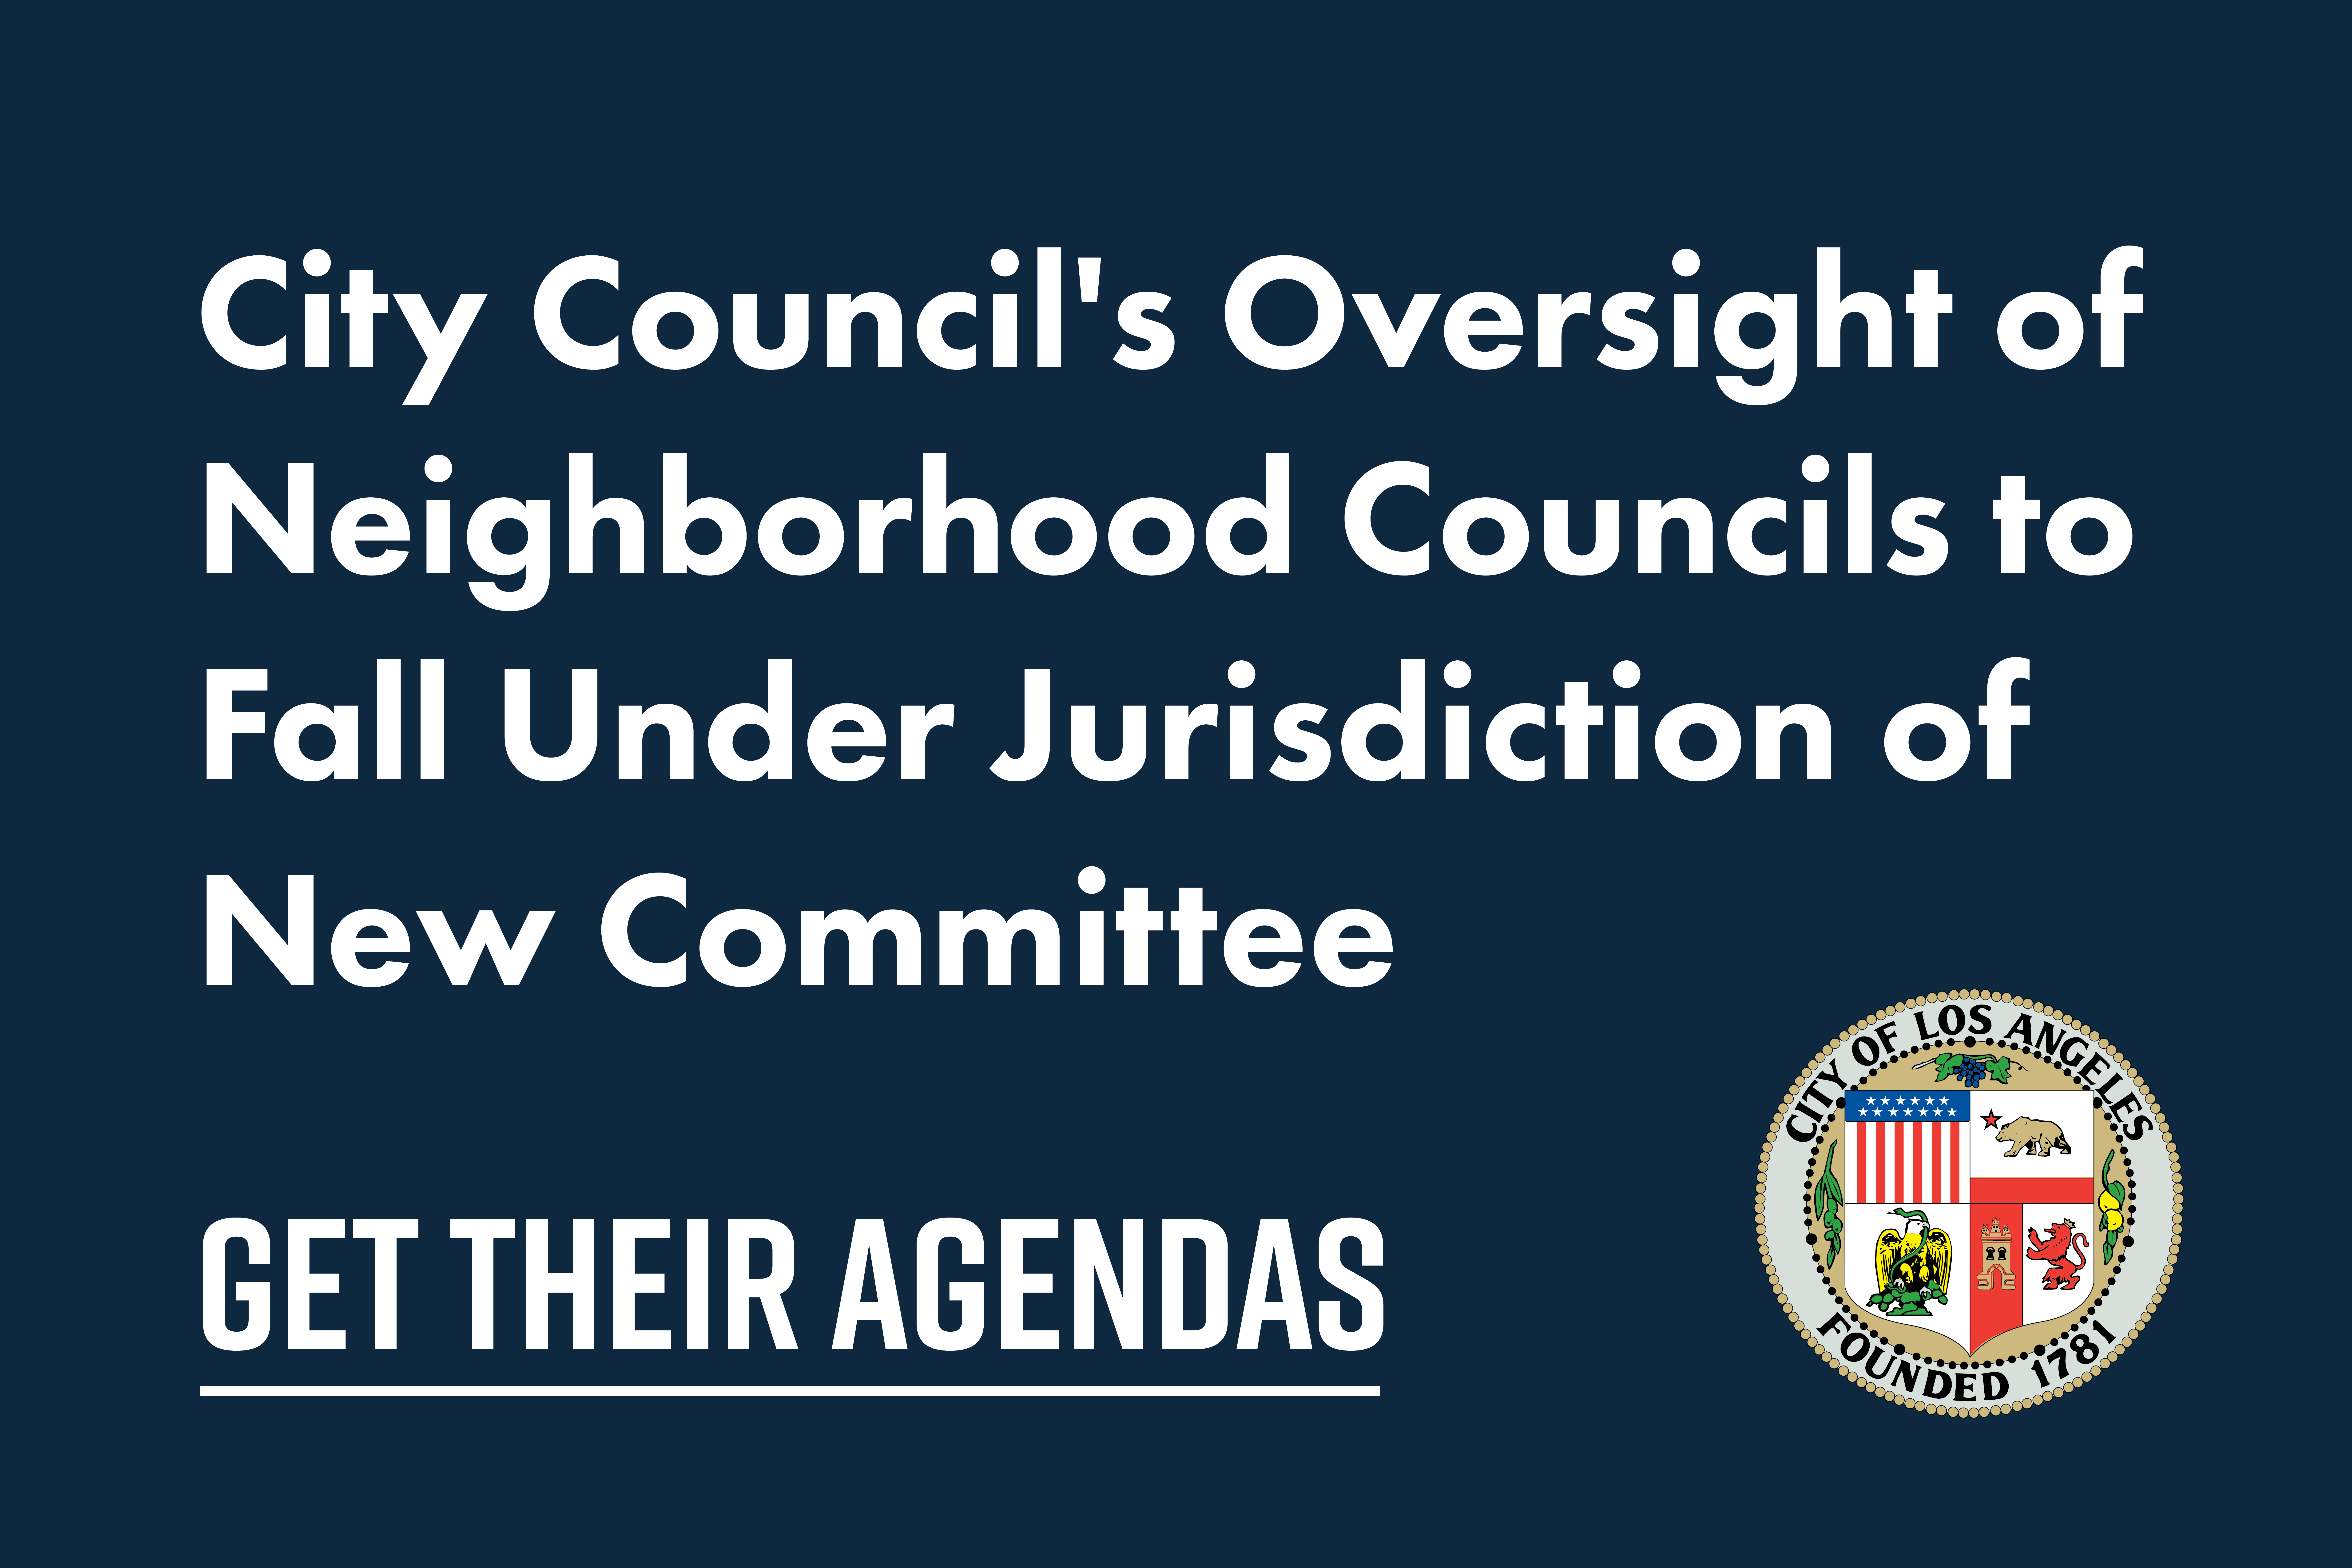 City Council's Oversight of Neighborhood Councils to Fall Under Jurisdiction of New Committee – Get Their Agendas